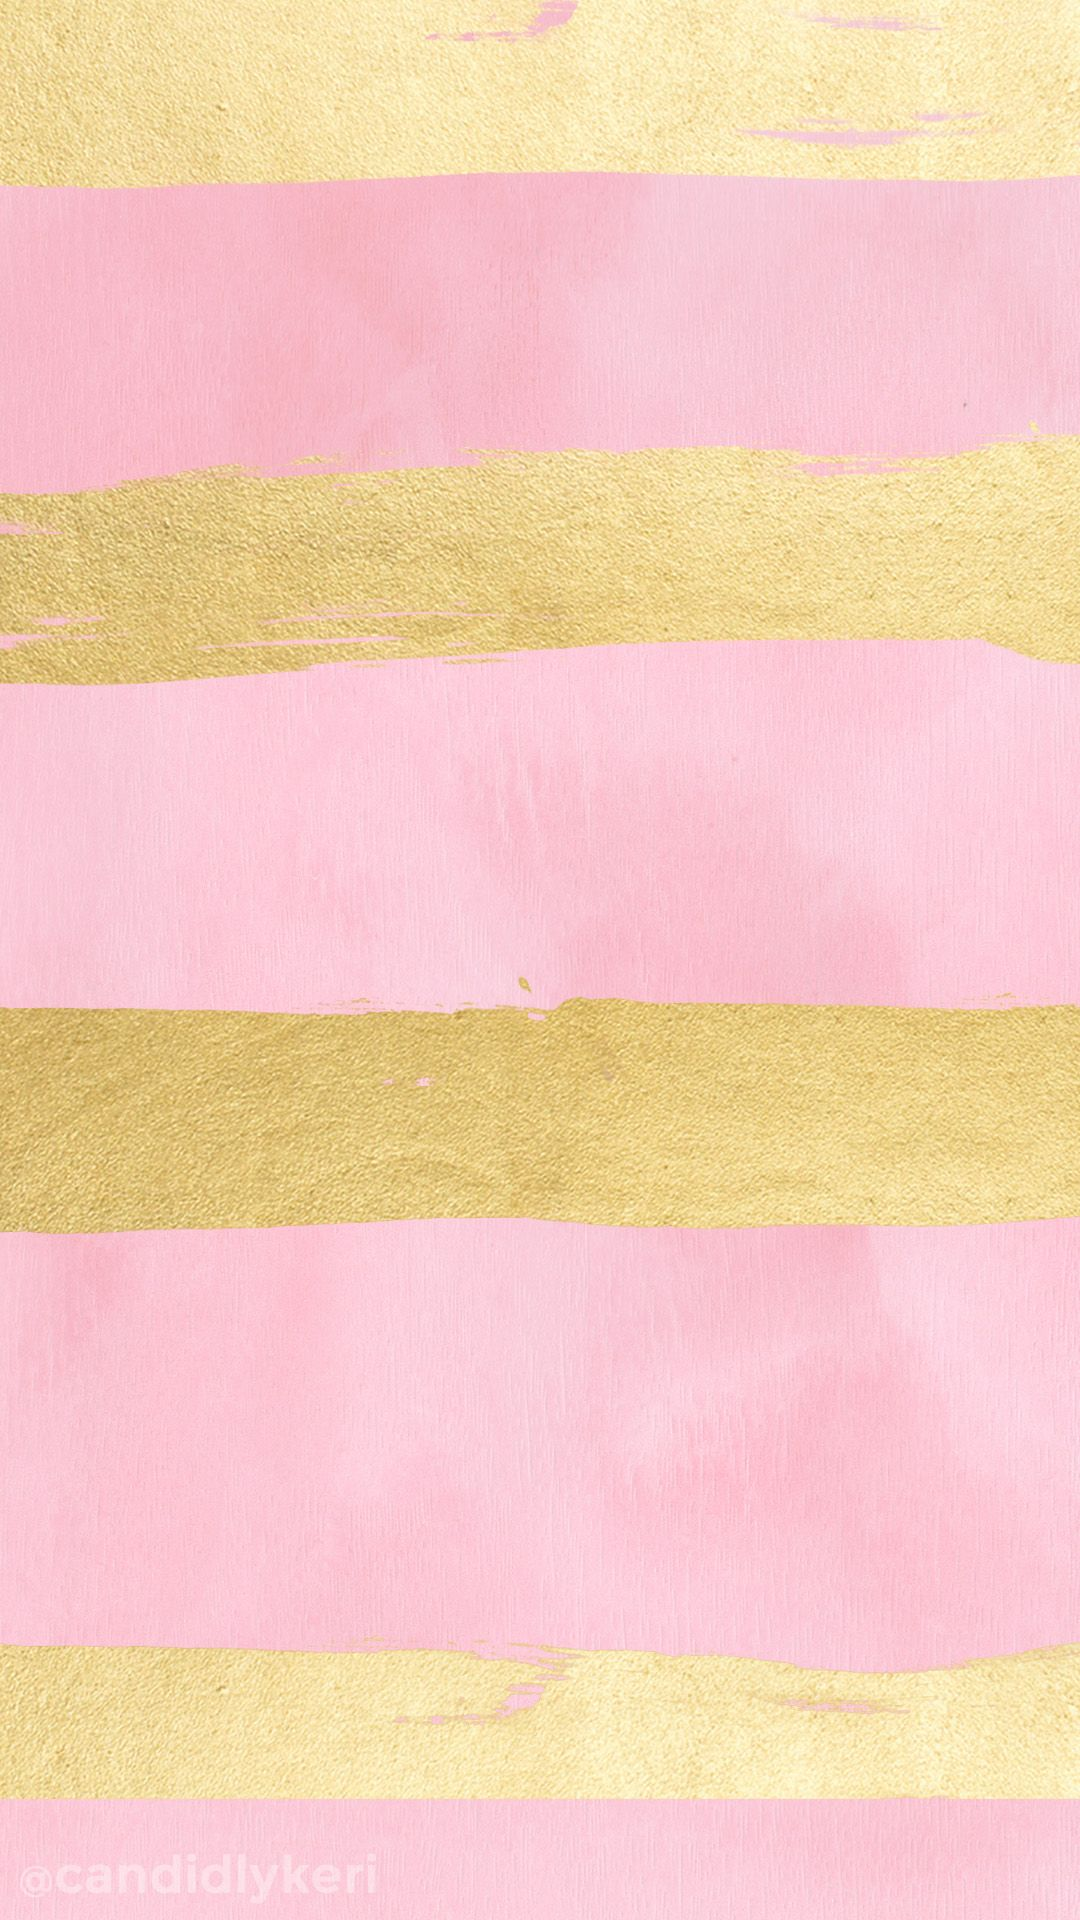 Pink and gold foil pattern background wallpaper you can